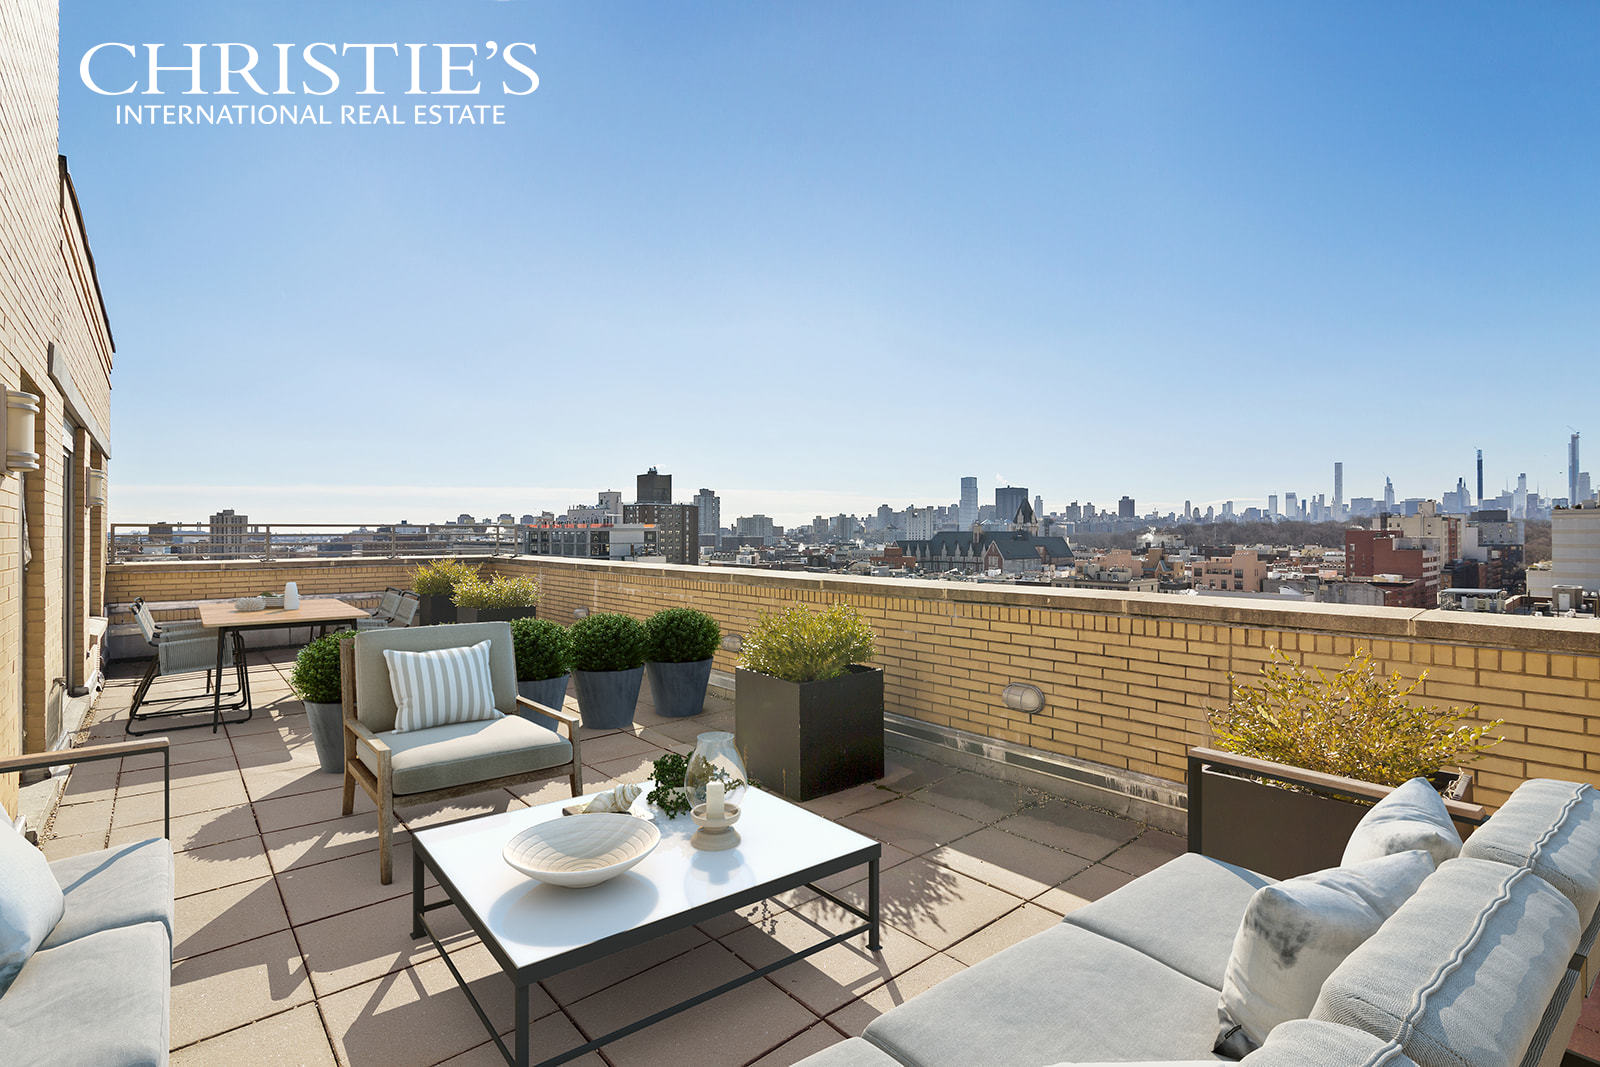 "Re-Introducing the sponsor sale of this fabulous SoHa 118 Penthouse Duplex apartment, distinguished by an incredible 3,456 square feet of luxuriously-appointed living space with multiple exposures, plus 753 square feet of outdoor space offering sweeping views in all directions overlooking Central Park, Downtown Manhattan and Columbia University.   This unique and extraordinary penthouse is divine for living and entertaining. Its expansive quarters feature 4 bedrooms, 4 full bathroom, 2 half bathrooms, and an open flowing layout graced by Brazilian cherry hardwood floors. The dramatic 36'-wide open-concept great room is a perfect setting for hosting grand or casual gatherings. Open to both the living and dining room is a sleek custom, modern chef's kitchen adorned with Silestone countertops, premium Wolf, Sub-Zero and Miele stainless steel appliances, and a center dining island which can accommodate 4 stools.   The airy upper level of this very special penthouse presents a quiet den with a fireplace, wet bar, and terrace with Central Park and downtown views, as well as an elegant master bedroom with 2 en-suite bathrooms, and its own terrace facing Columbia University and Morningside Park. Each additional bedroom also features its own lovely private outdoor space.   SoHa 118 luxury condominium, known as ""The Face of South Harlem,"" offers residents attentive 24-hour doorman service, a live-in superintendent, fitness room, media room, children's playroom, laundry facility, cold storage for groceries and tranquil common courtyard. On the building's ground floor level is a Starbucks and Chase Bank for your daily convenience. SoHa 118 is Harlem's ultimate living destination, attractively located near numerous modes of transportation, Morningside and Central Parks.   This unit has never been occupied and is a sponsor sale. The complete offering terms are in an offering plan available from sponsor. File no. CD 06-0578. Sponsor: 10 Equities LLC, 37 West 65th Street, New York, NY 10023 ."